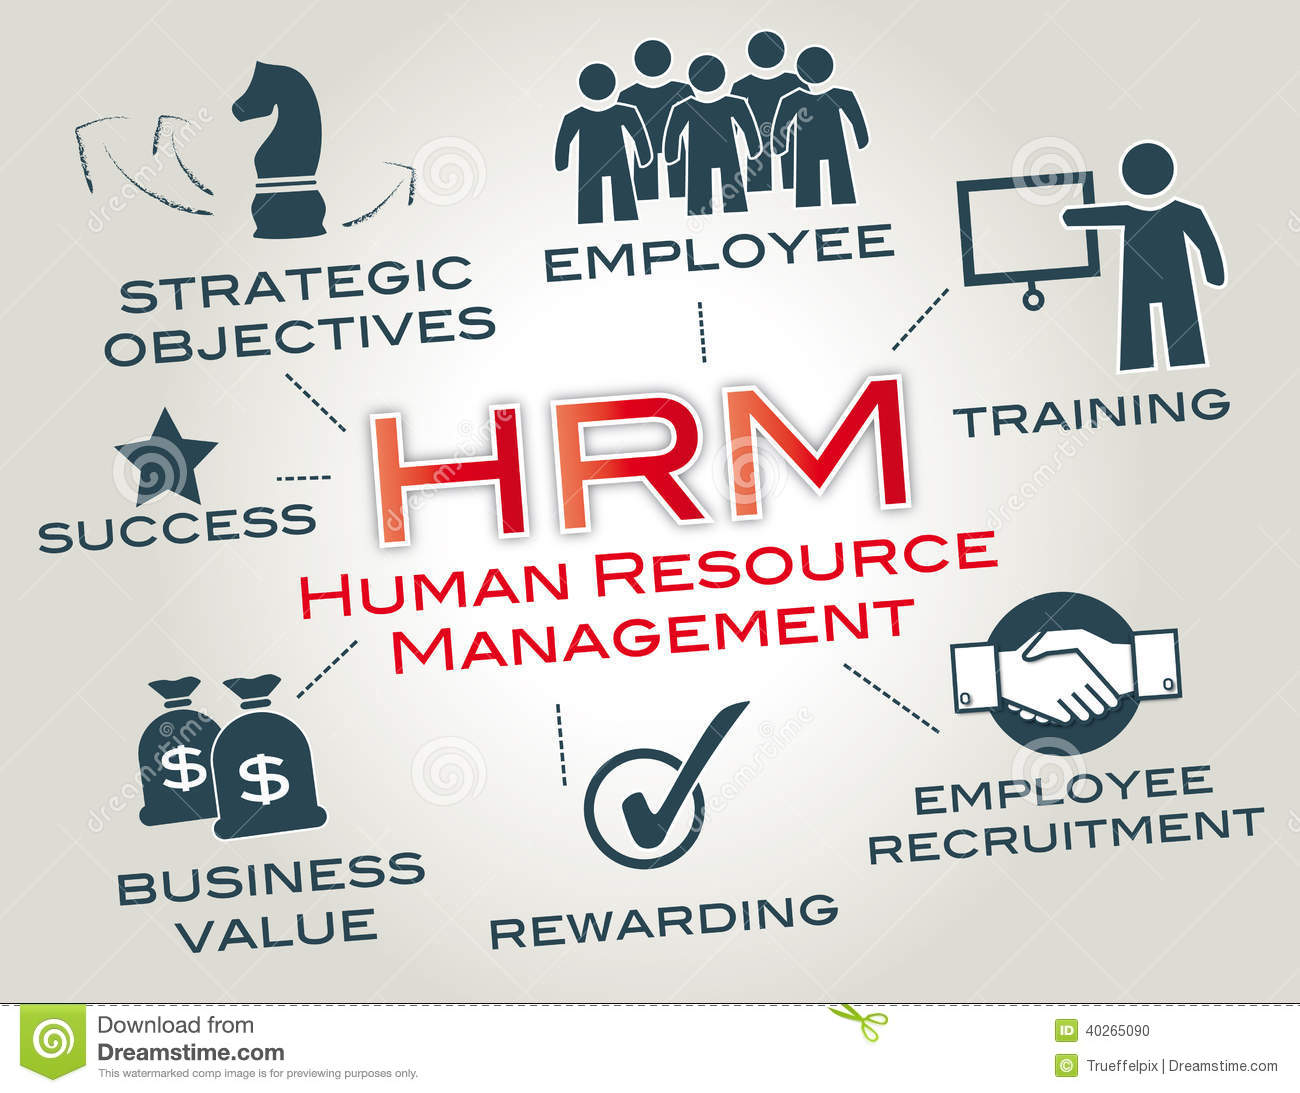 Human Resource Management Is A Function In Organizations Designed To